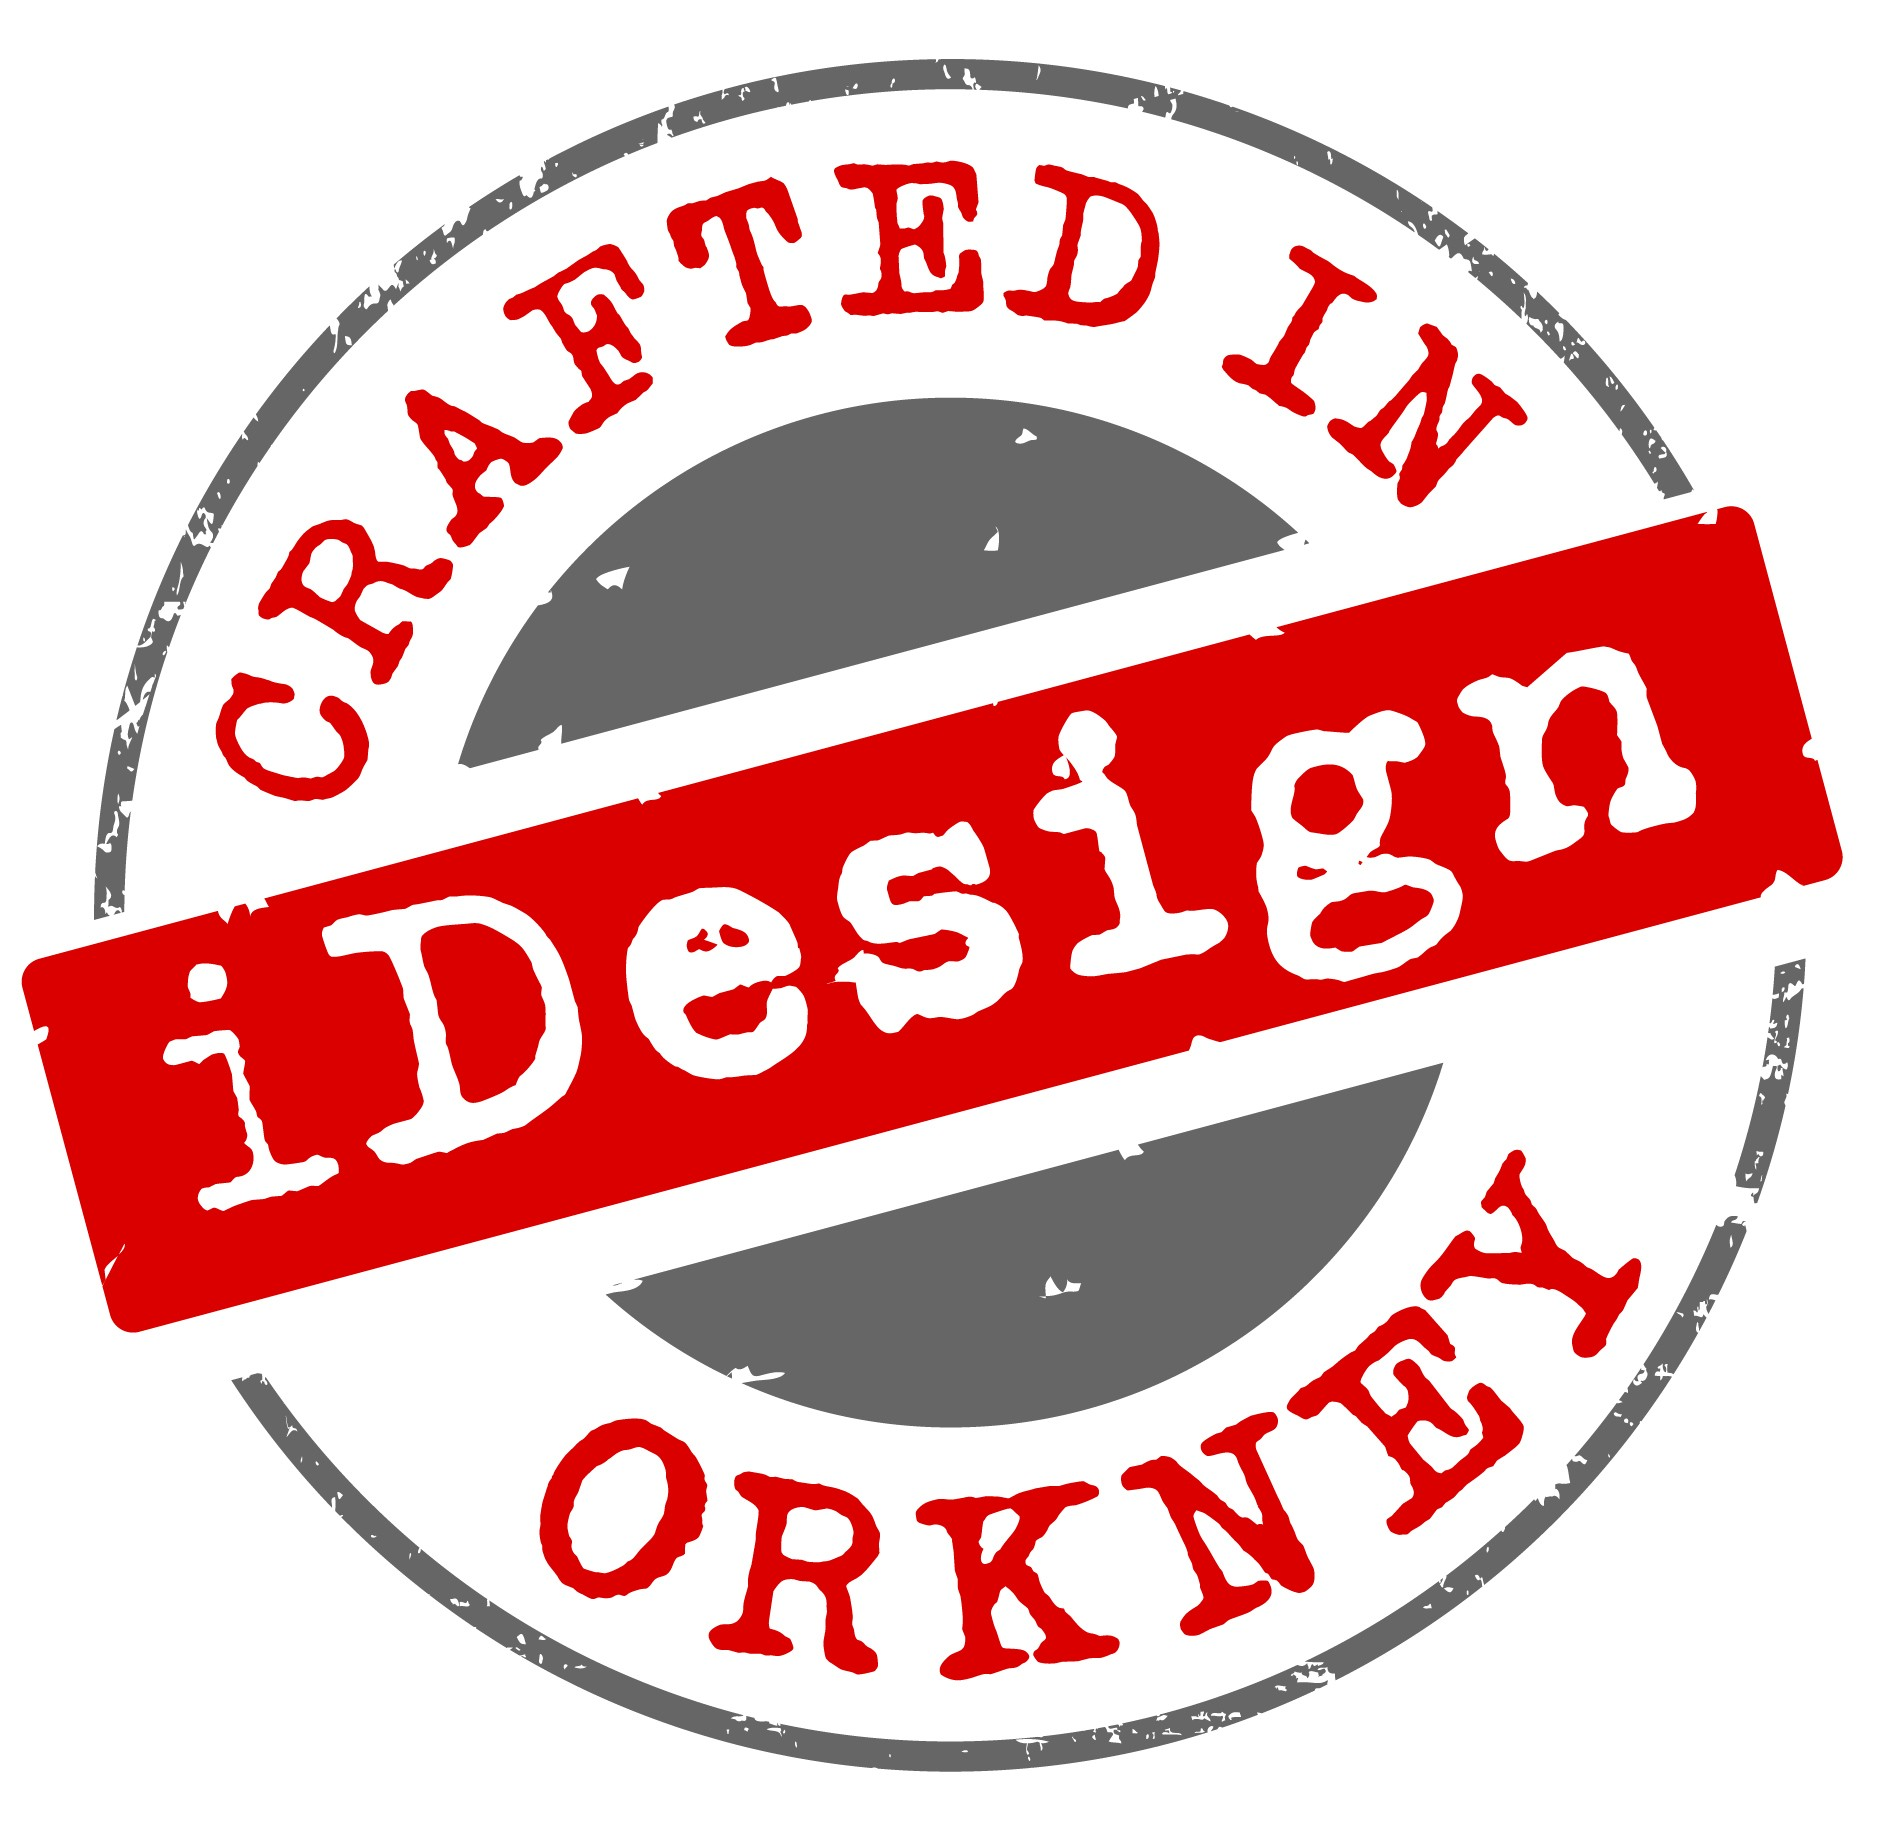 Crafted in Orkney